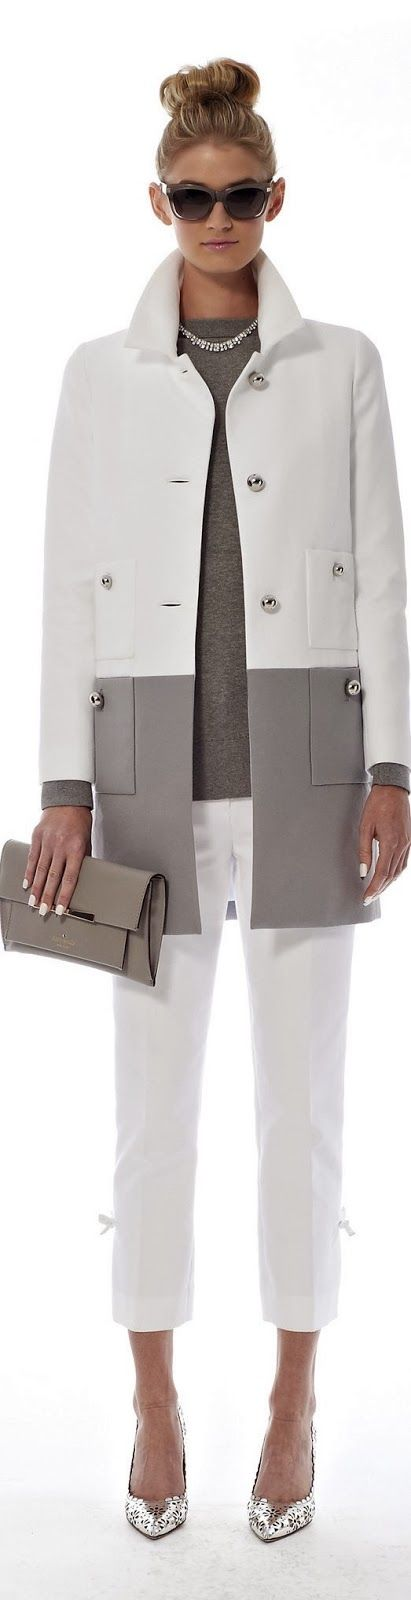 C'est si bon kate spade spring 2014. gray & white fashion